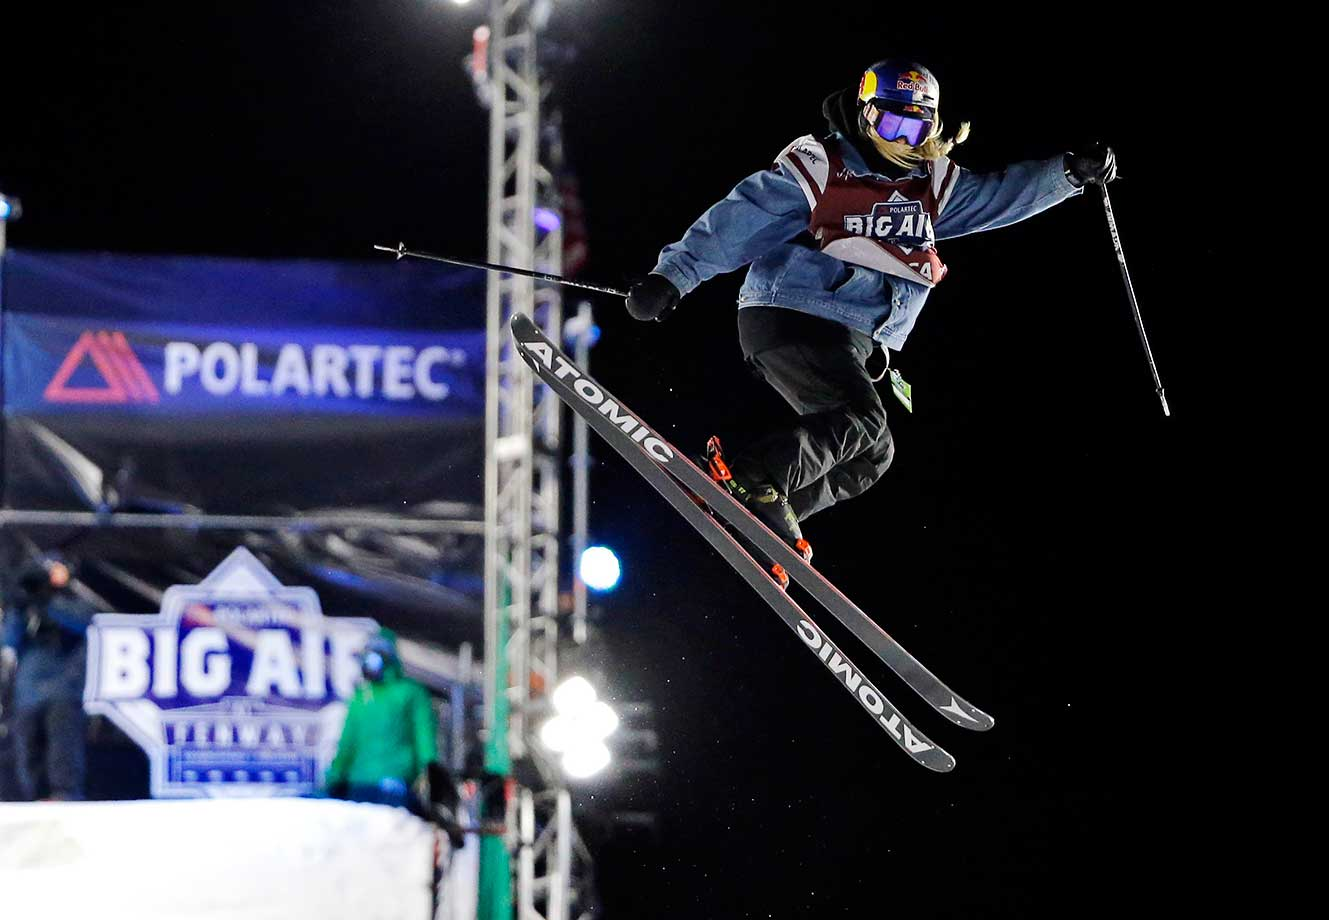 Lisa Zimmermann of Germany  jumps during the Big Air at Fenway Park skiing and snowboarding event in Boston.